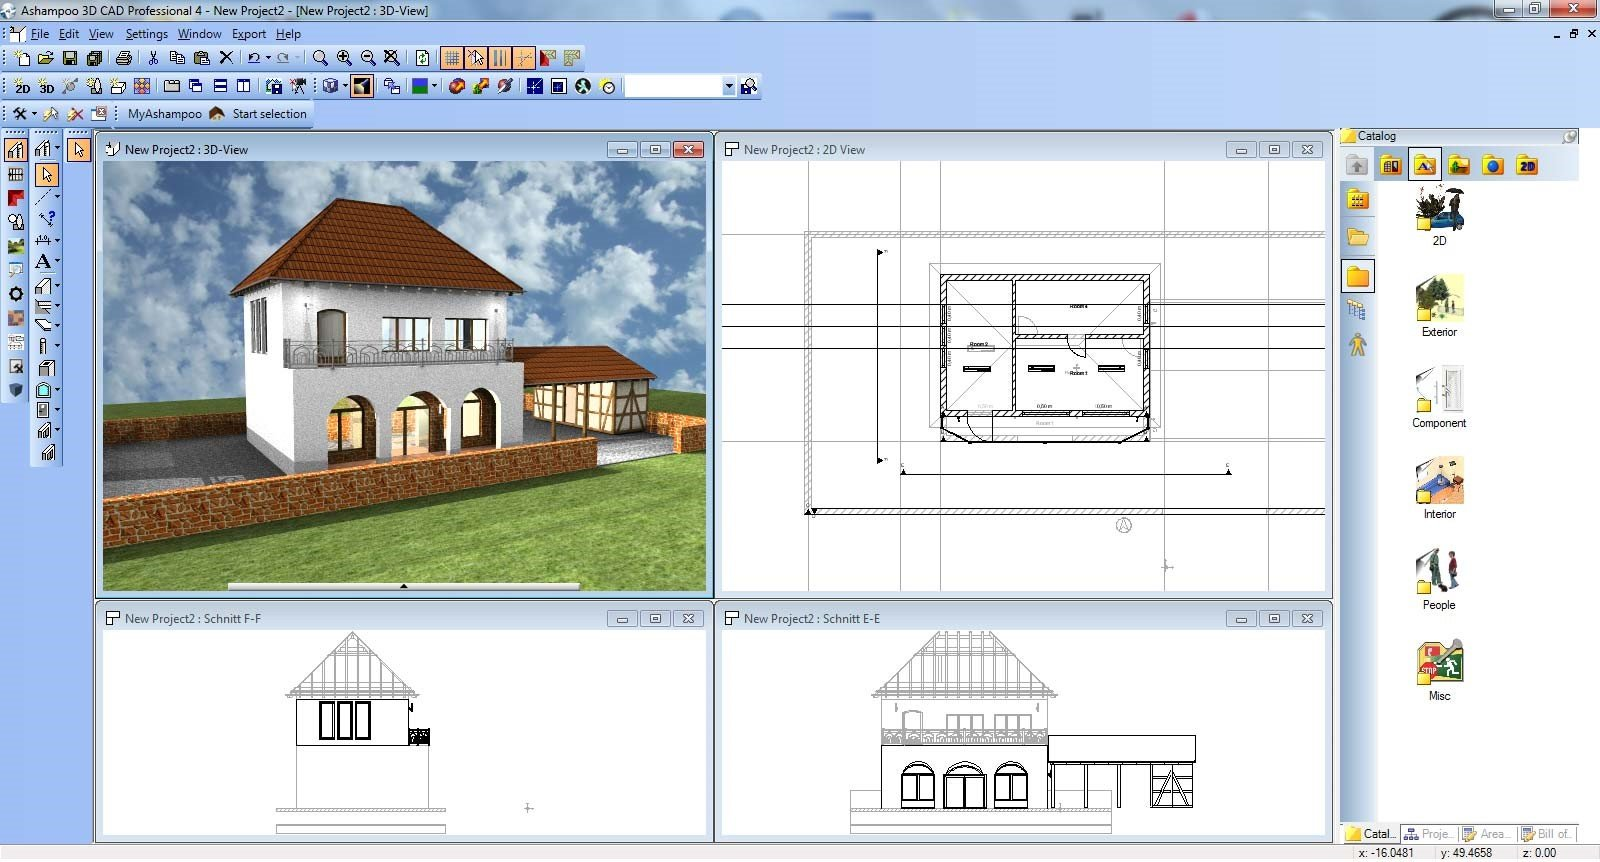 Ashampoo 3d Cad Professional Alternatives And Similar